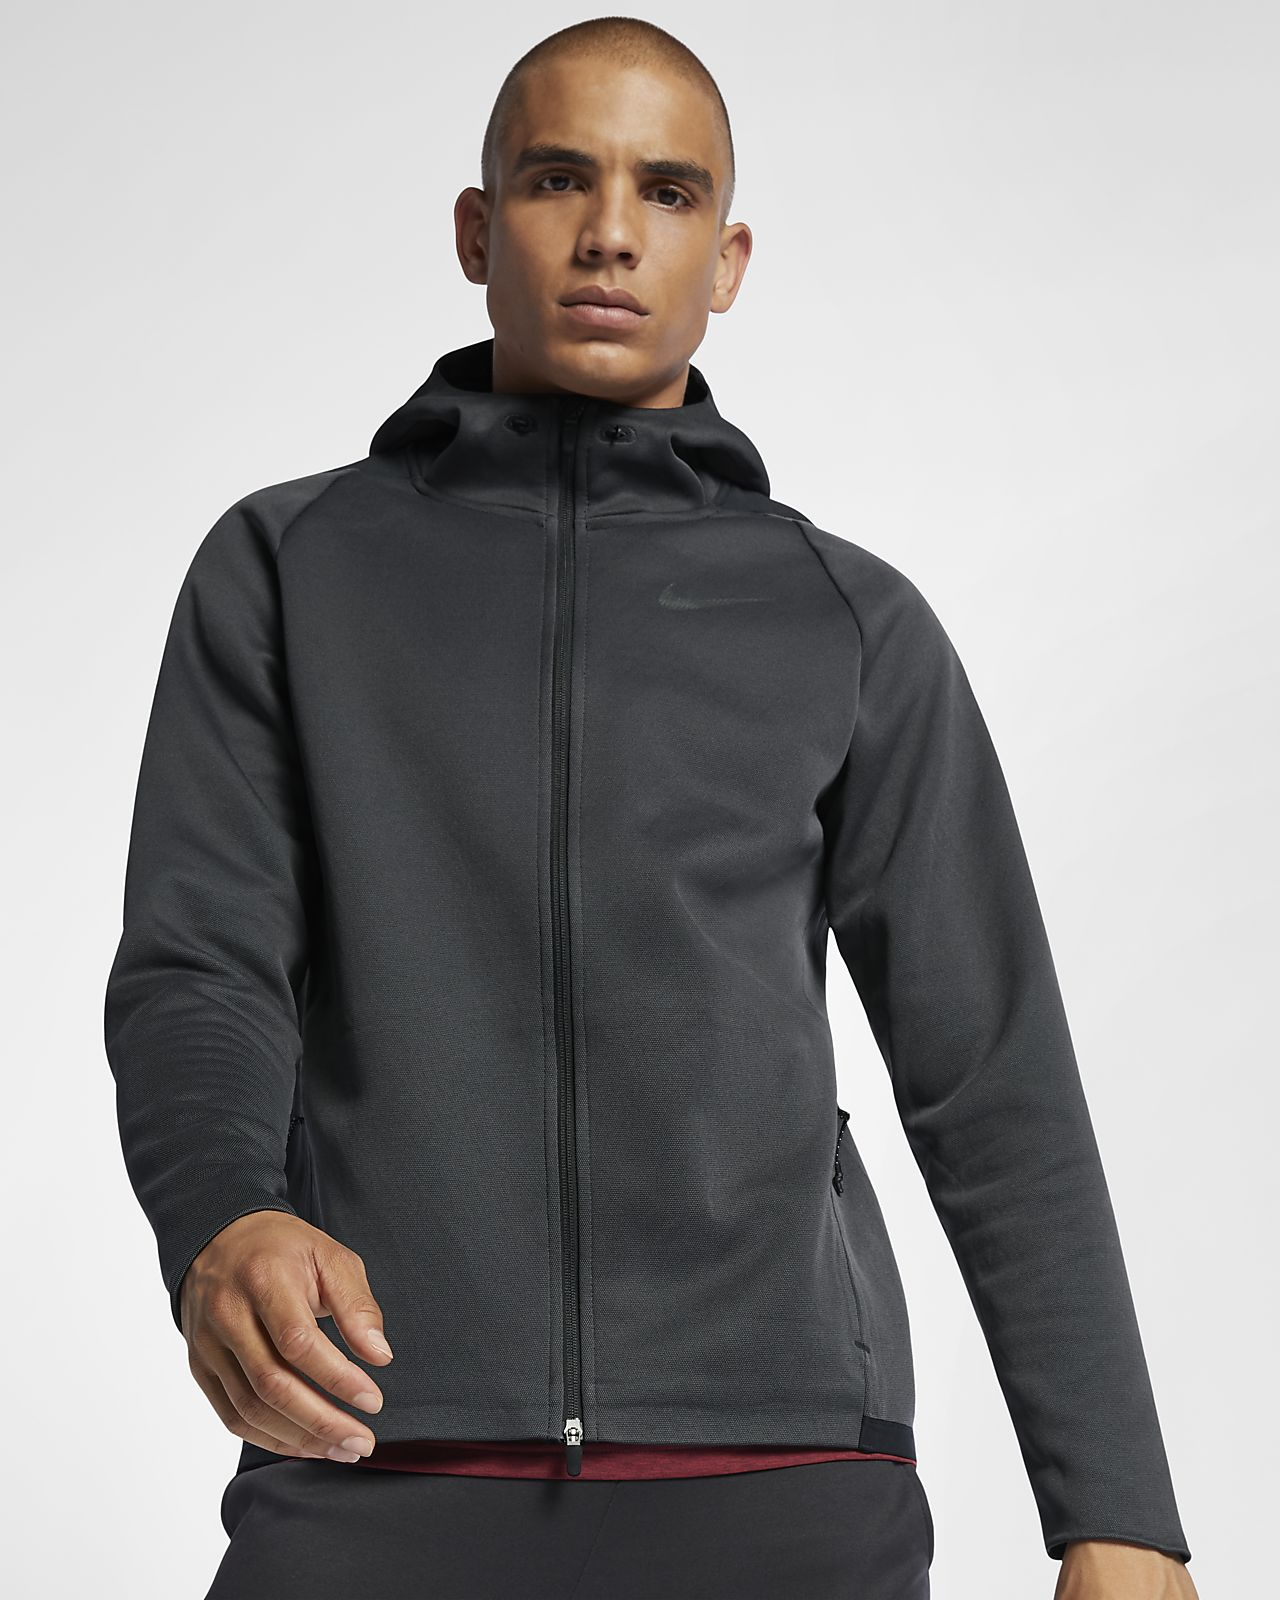 3b6d3a33 Nike Therma Sphere Men's Training Jacket. Nike.com